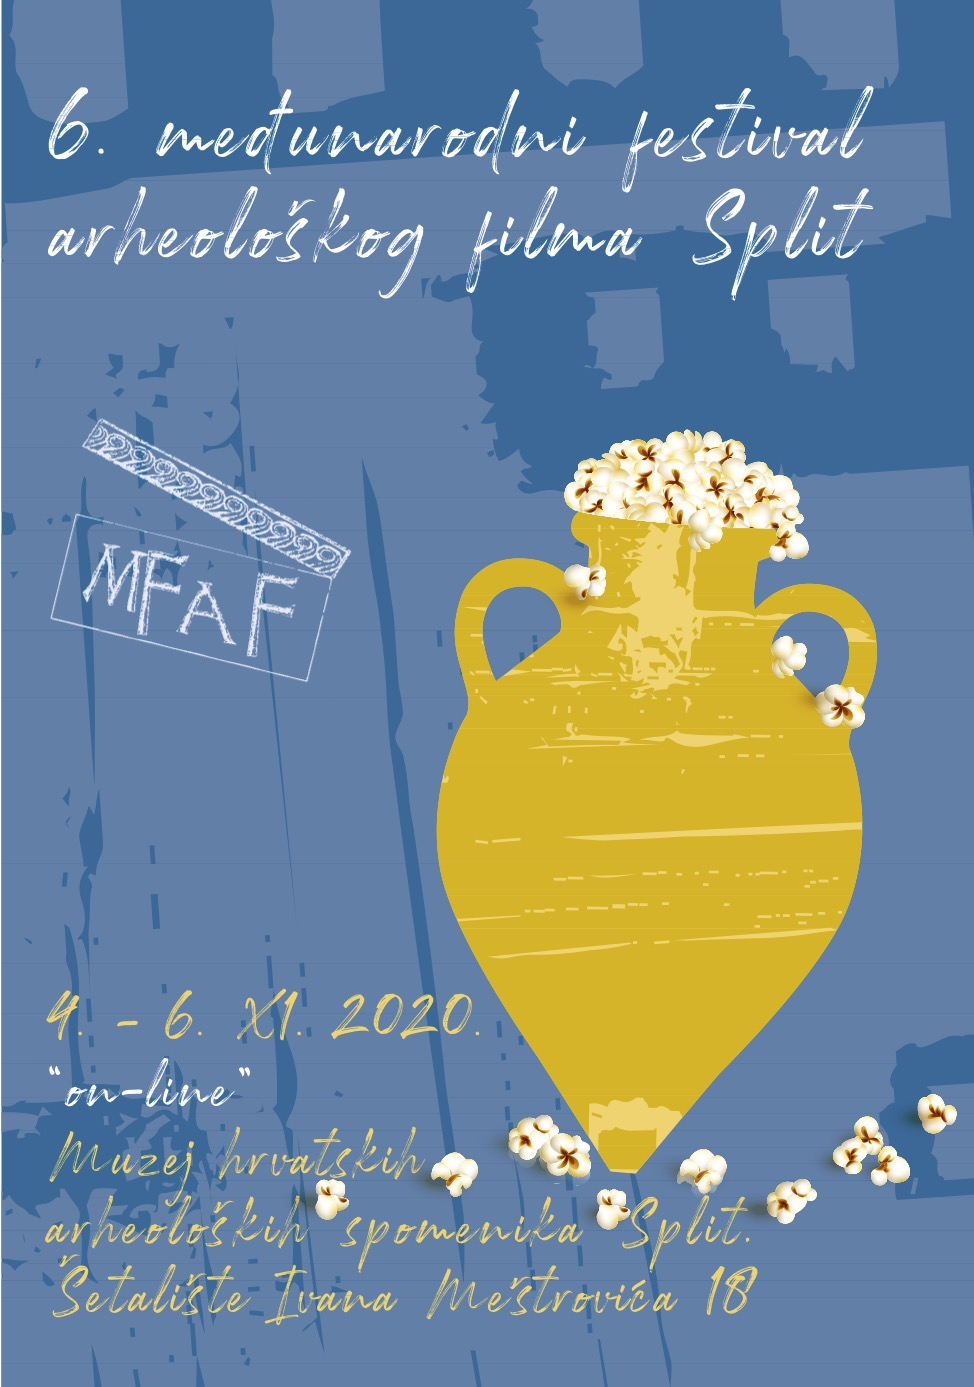 The documentary 'Time Has Not Helped' screened at the 6th International Archaeology Film Festival – MFAF in Split, Croatia